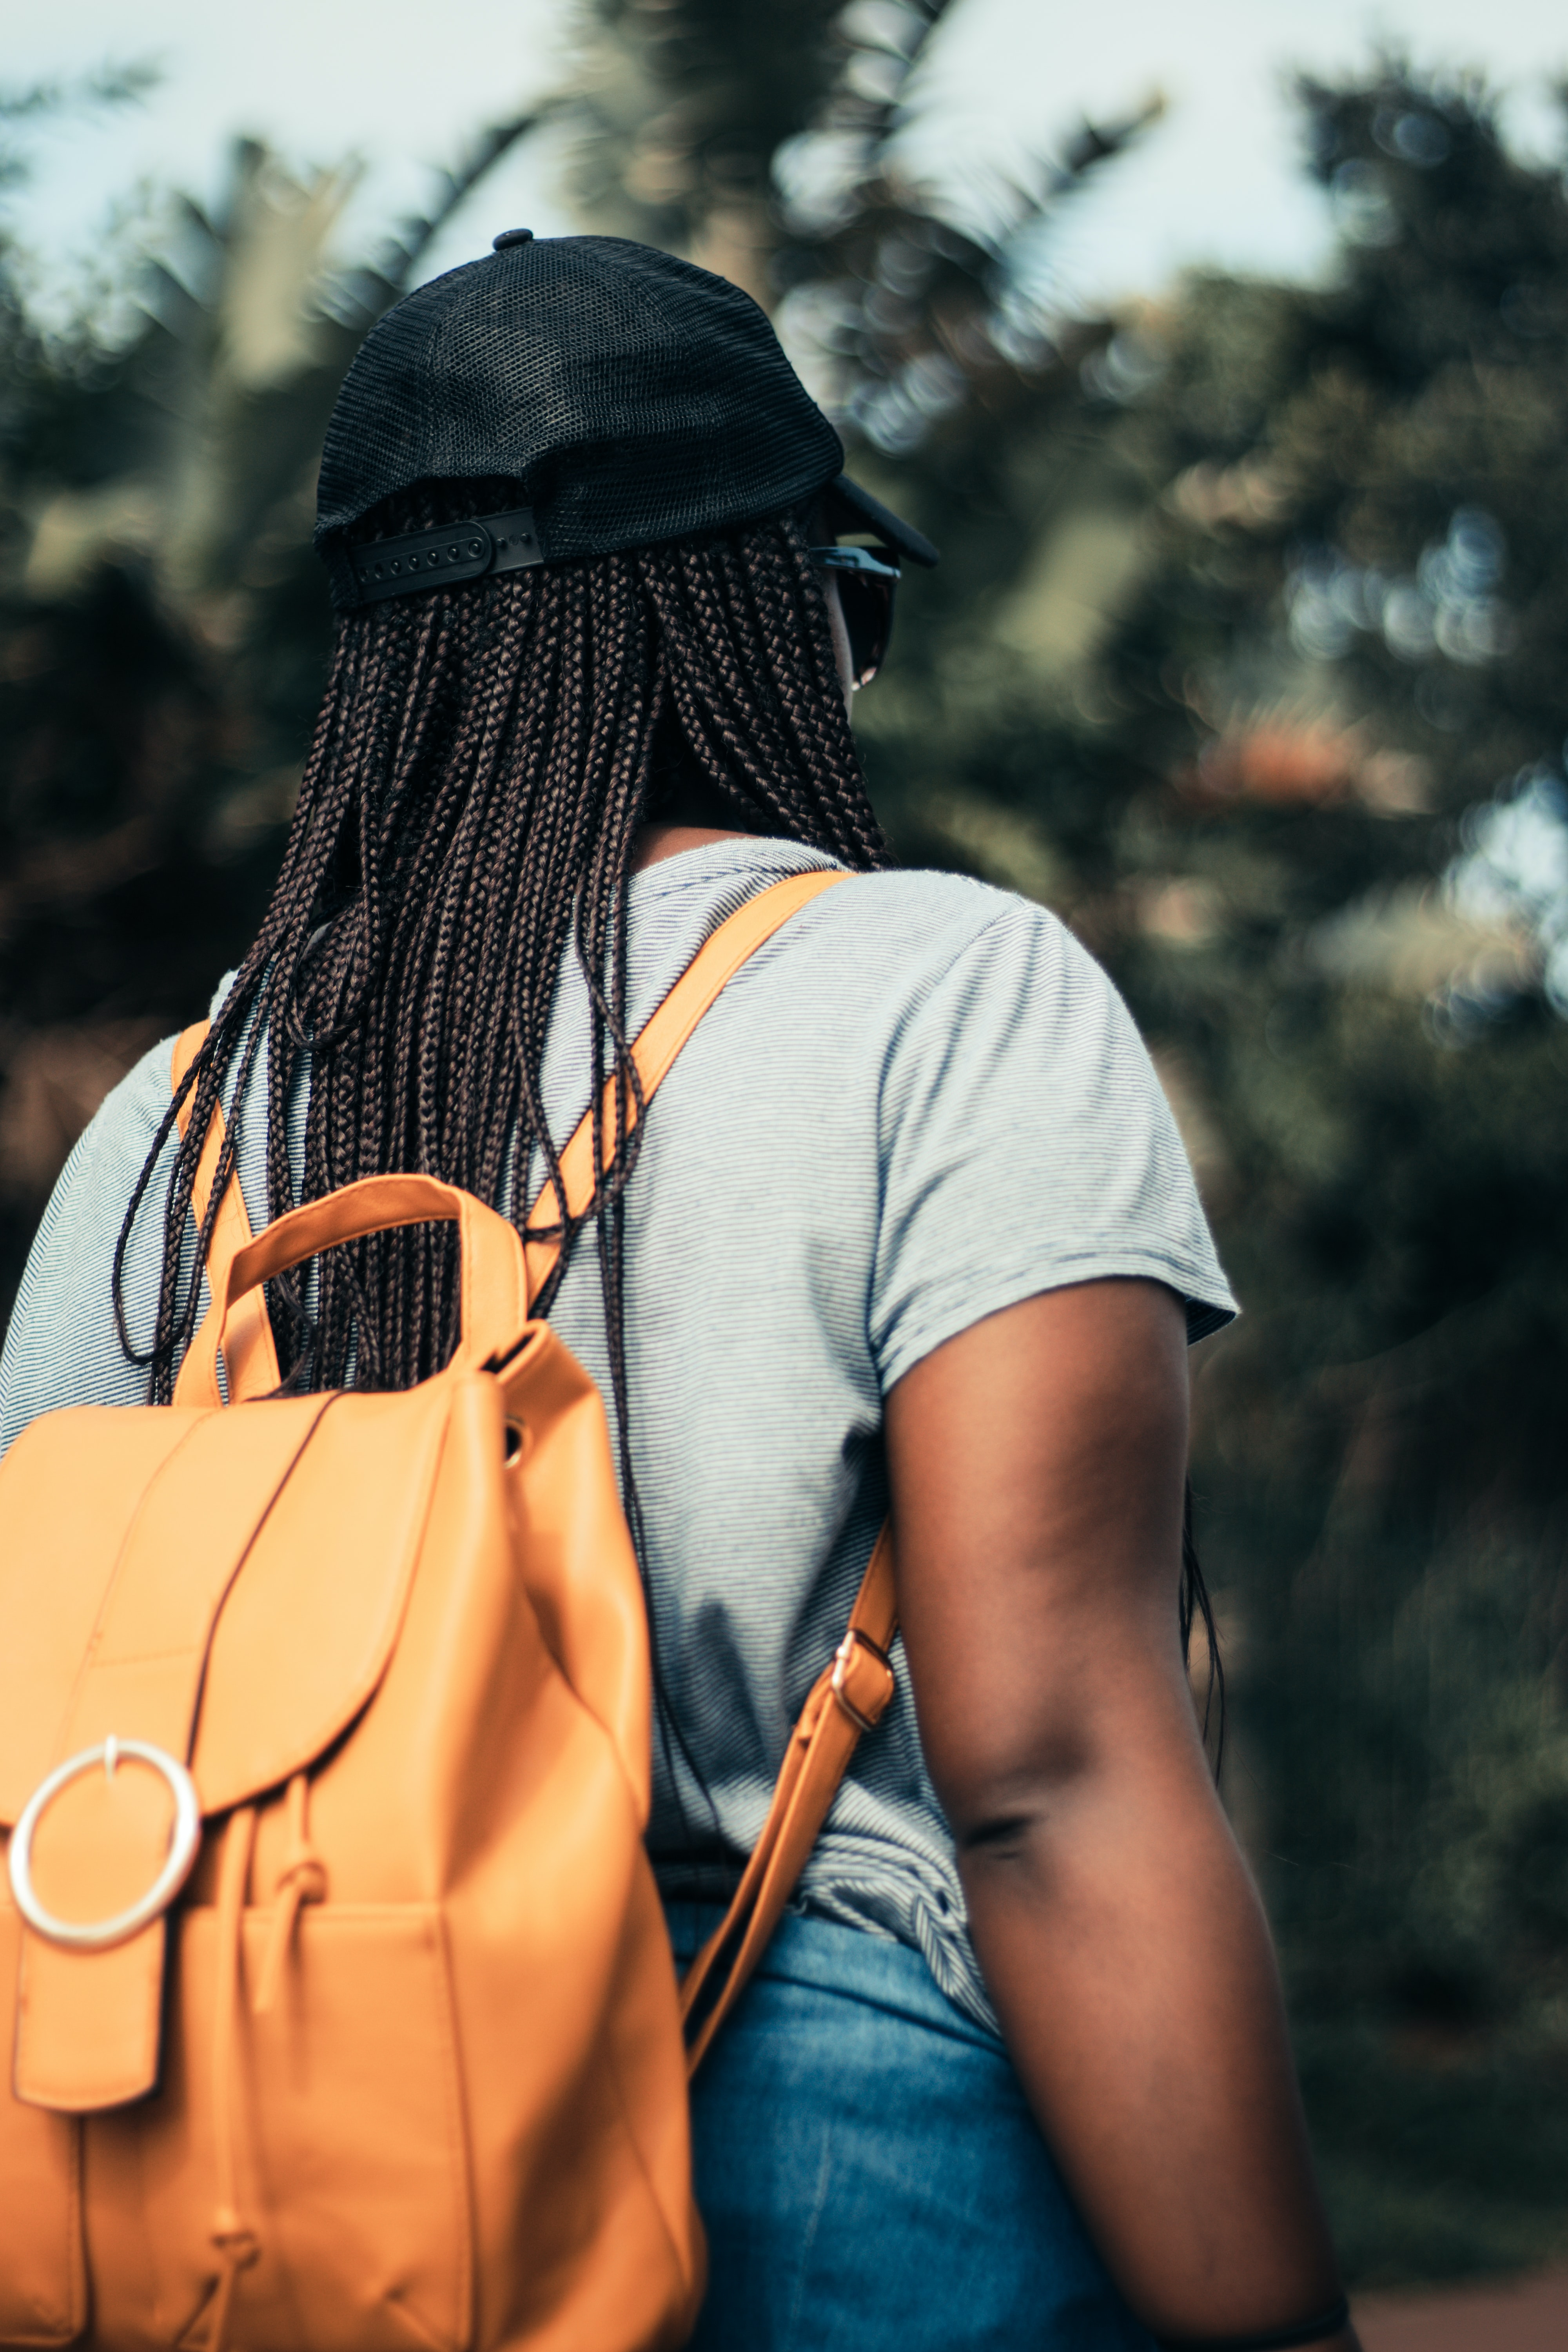 woman with braided hair wearing backpack